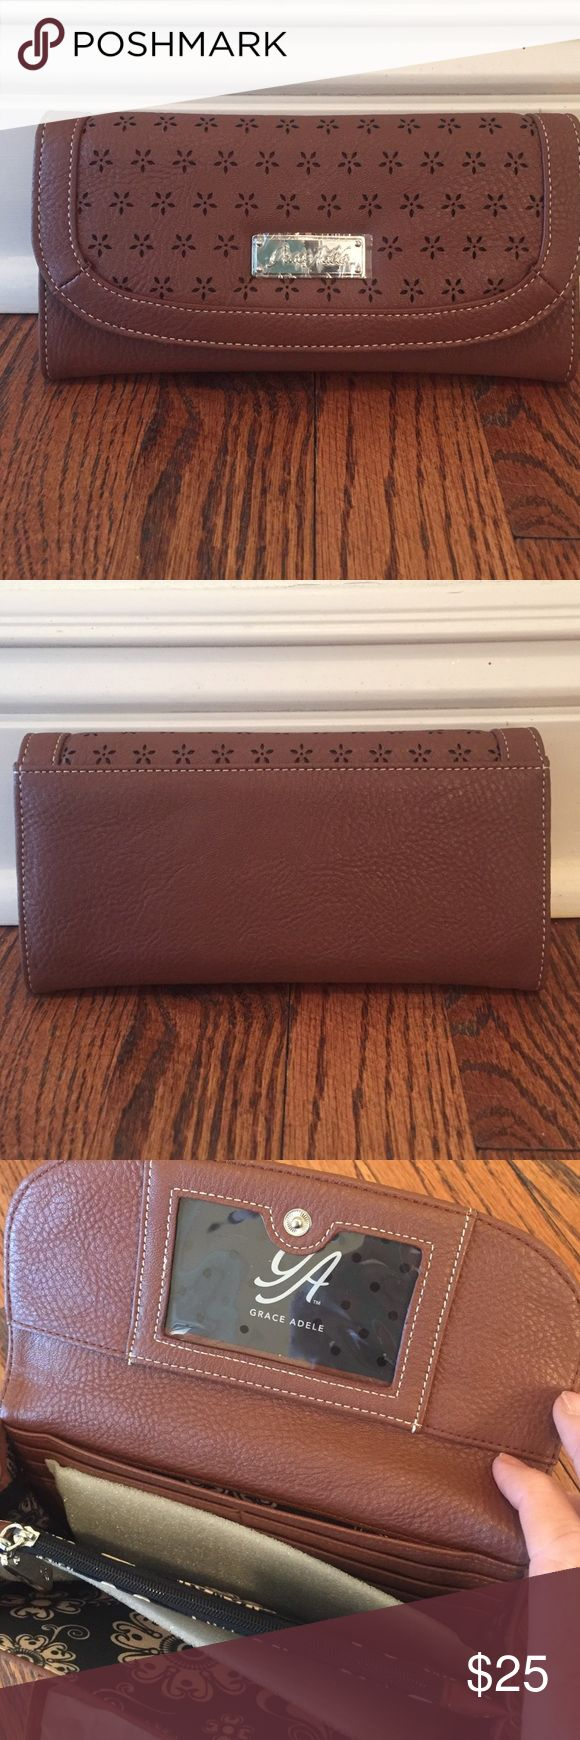 NEW Grace Adele Wallet Contrast Sand Color Grace Adele Bags Wallets